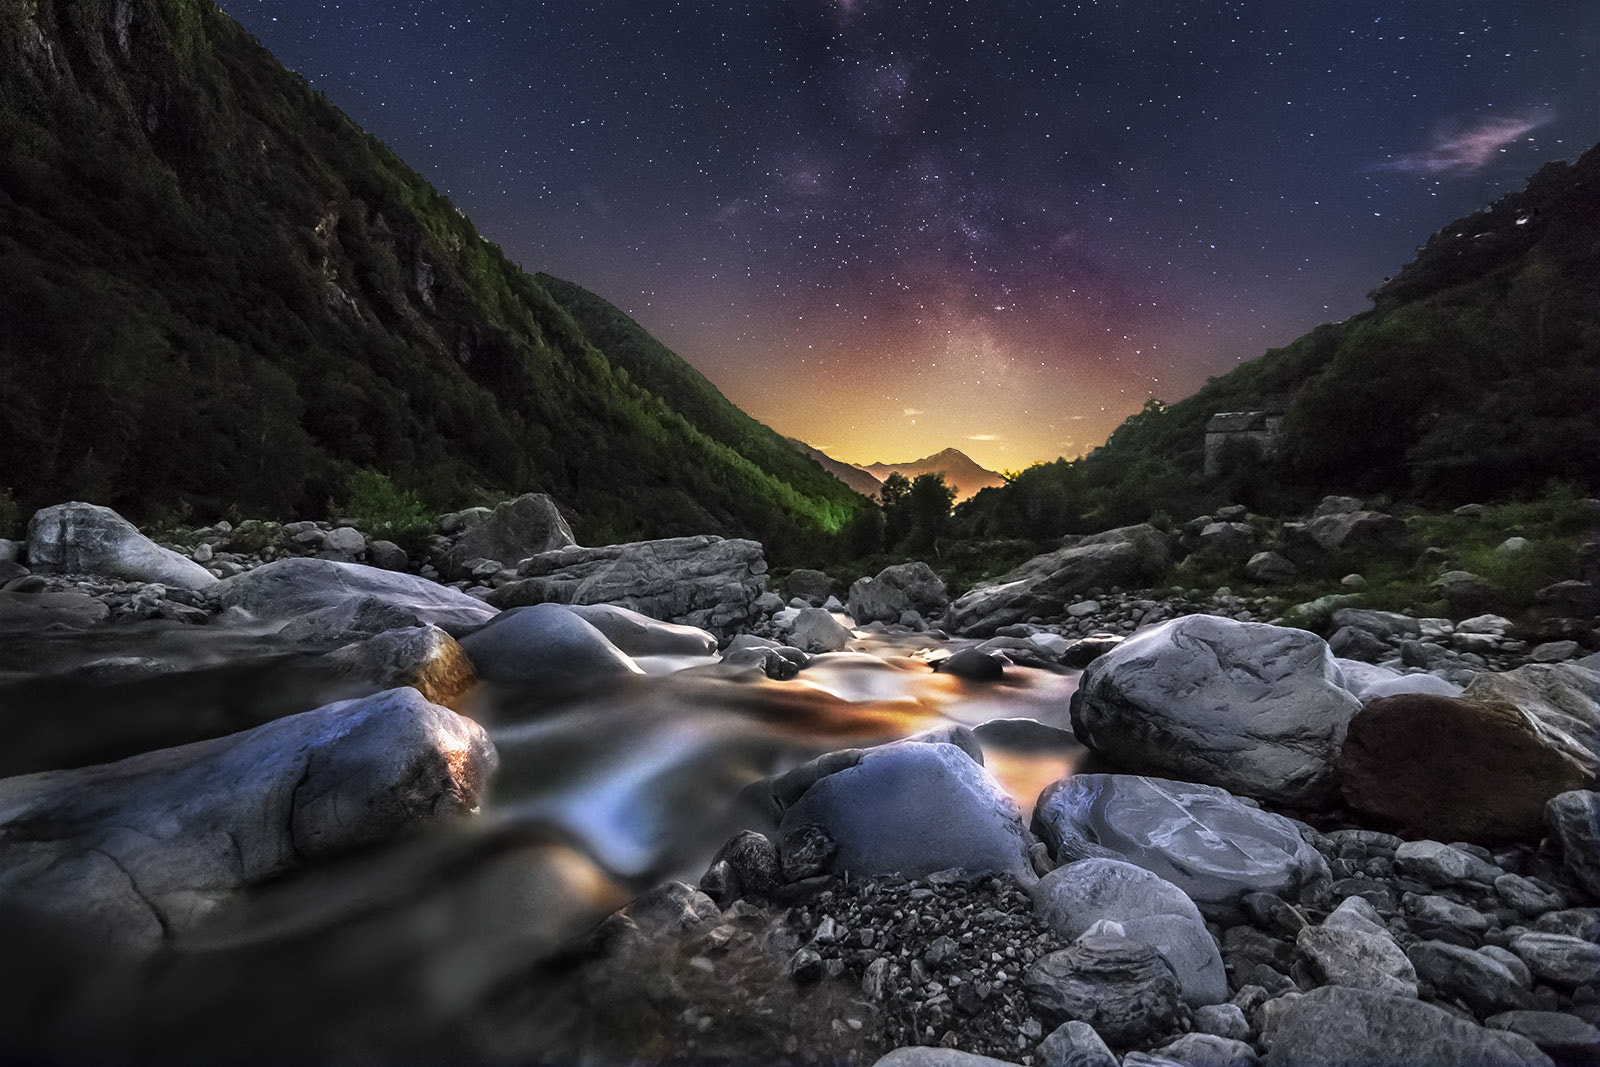 Photograph Golden dream Milky way Nightscape by Gianluca Biondi on 500px